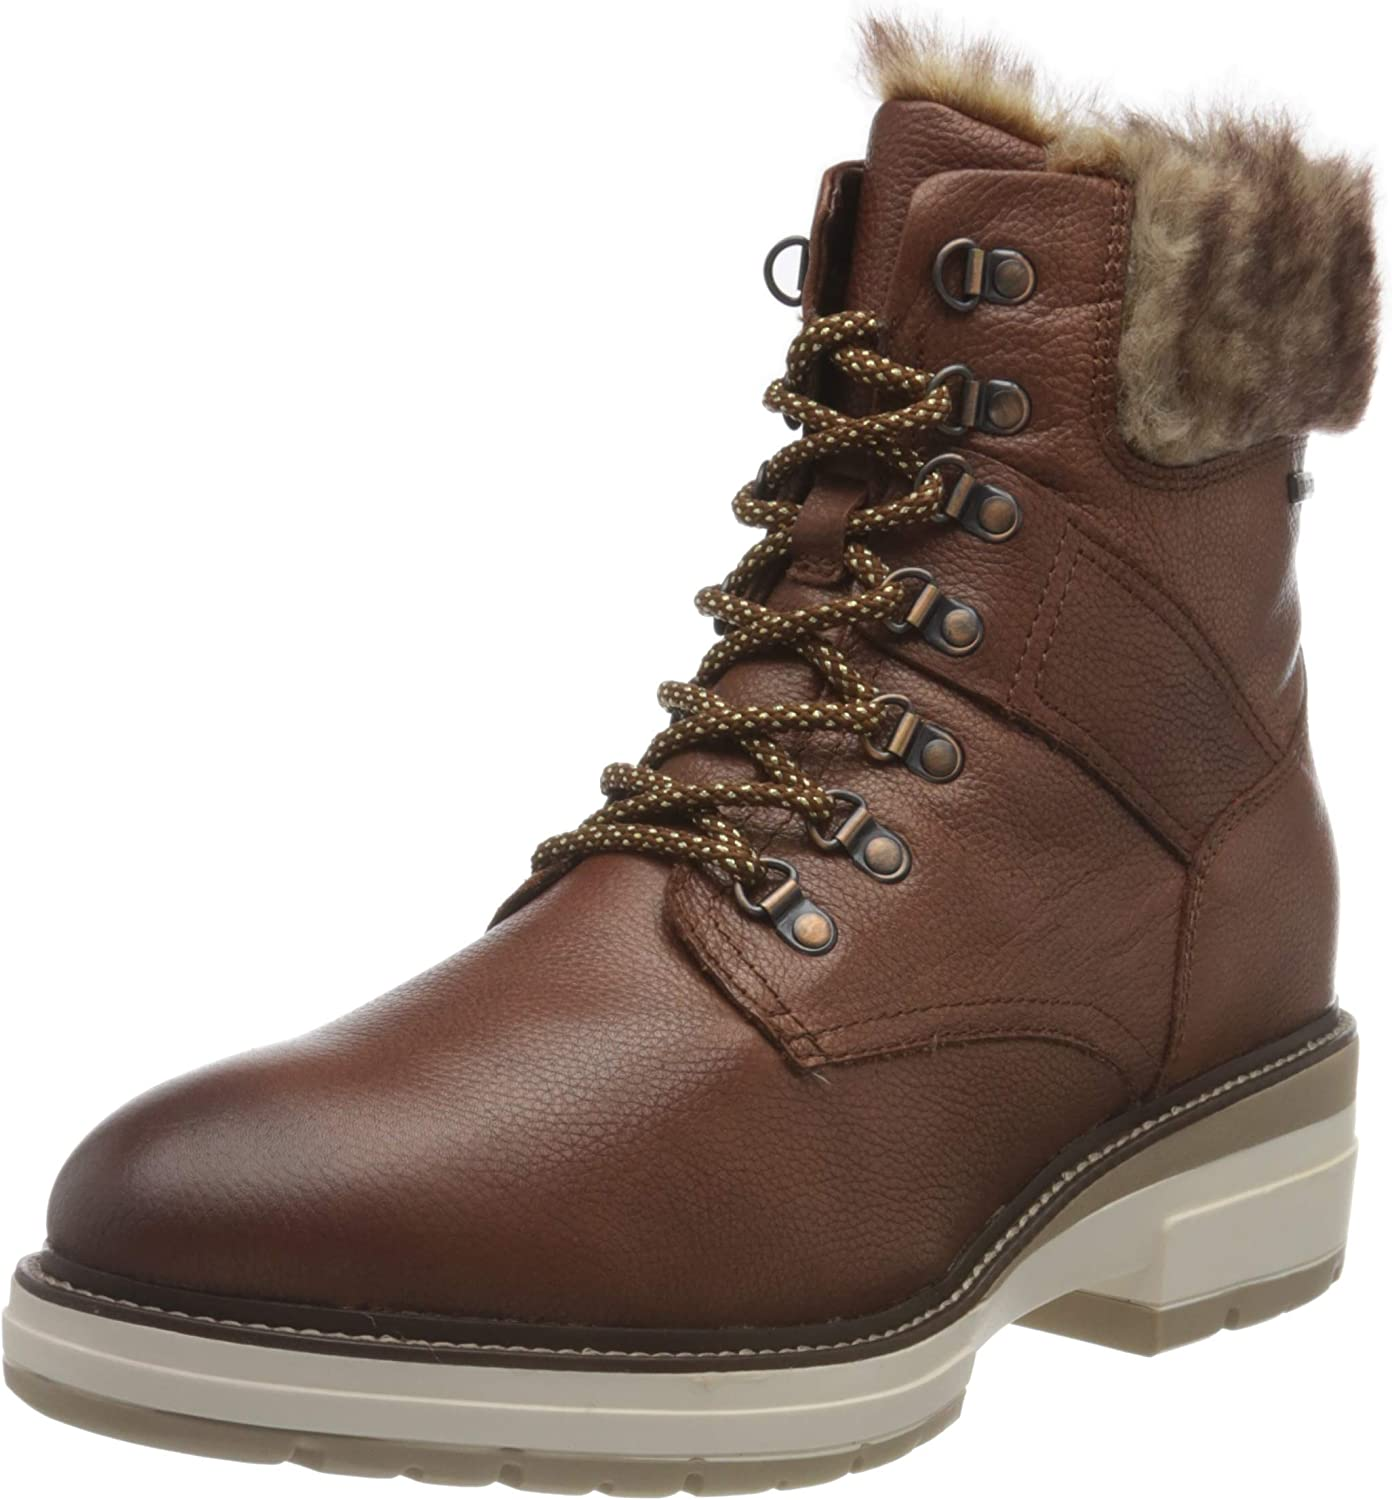 Tamaris Women's 1-1-26259-25 Super special price Ankle Boot Quantity limited